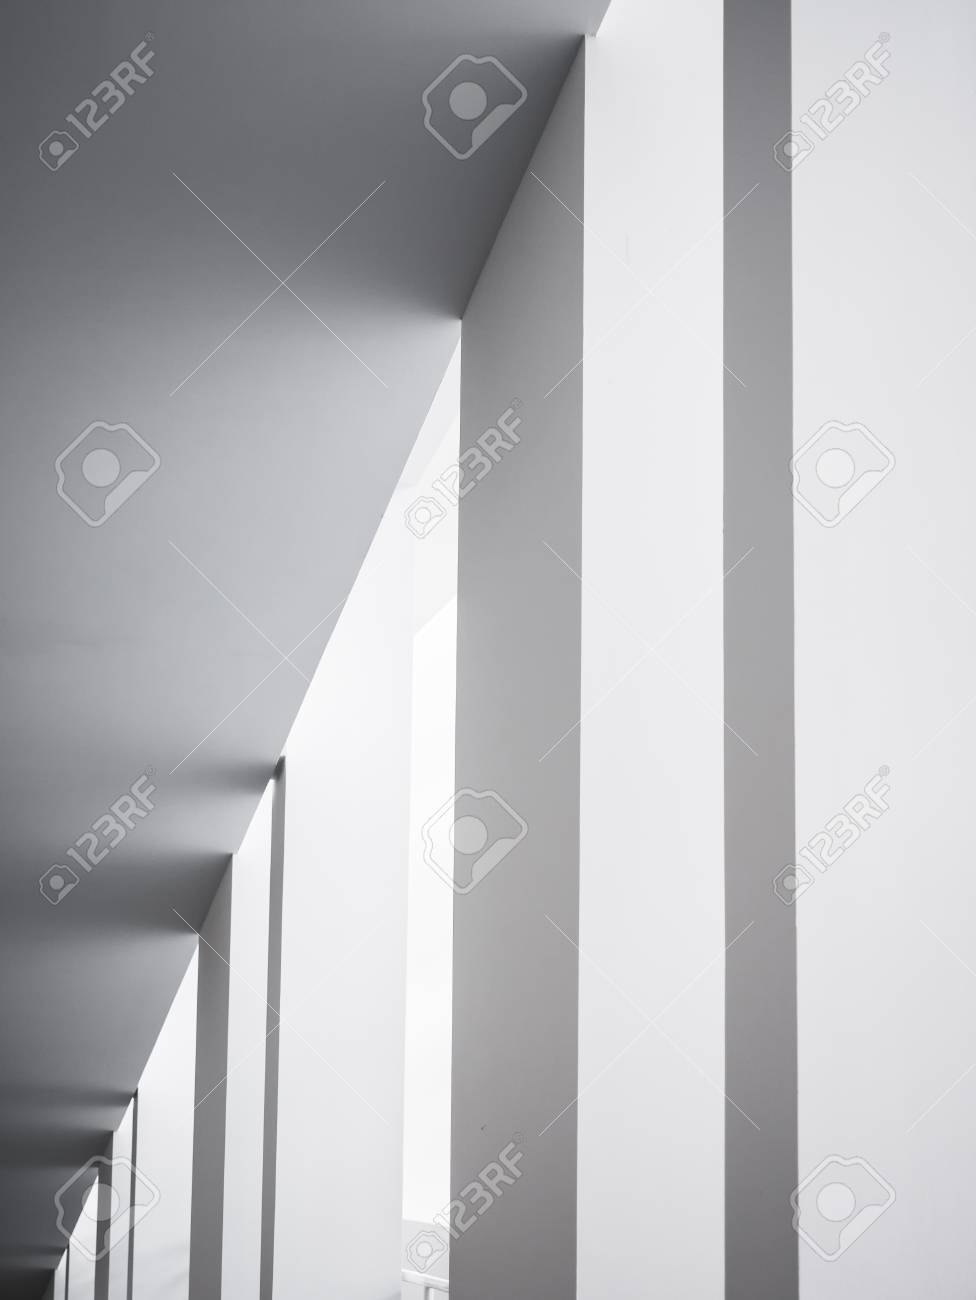 Architecture details White columns Modern building geometric Abstract background - 115334600